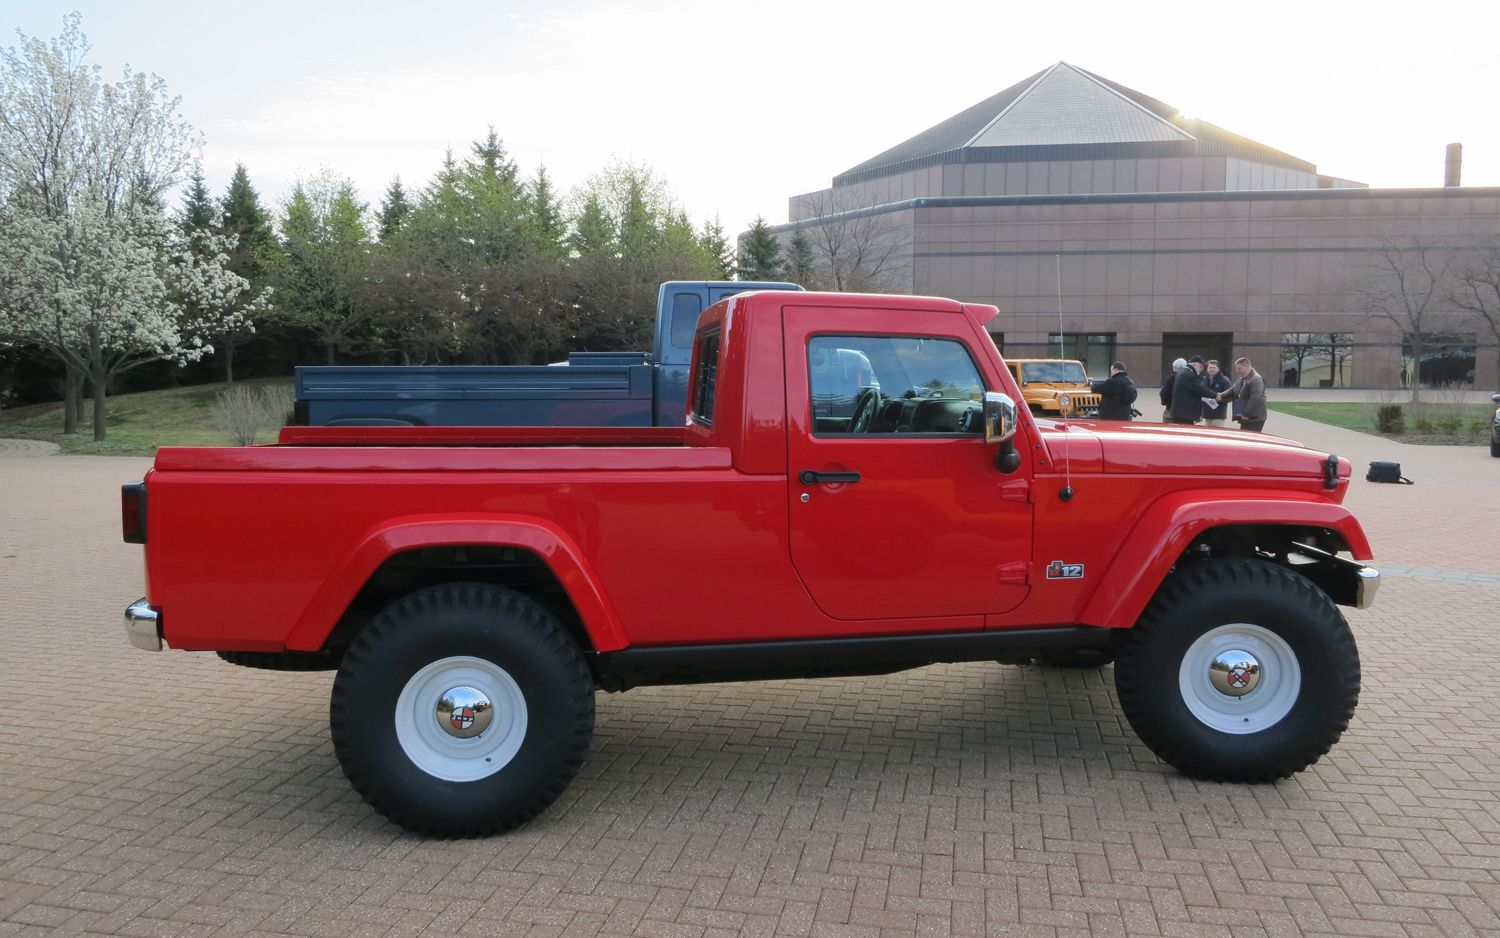 Diesel Jeep Wrangler For Sale >> Jeep CEO Hints At Diesel, Pickup Options For Next-Gen Wrangler